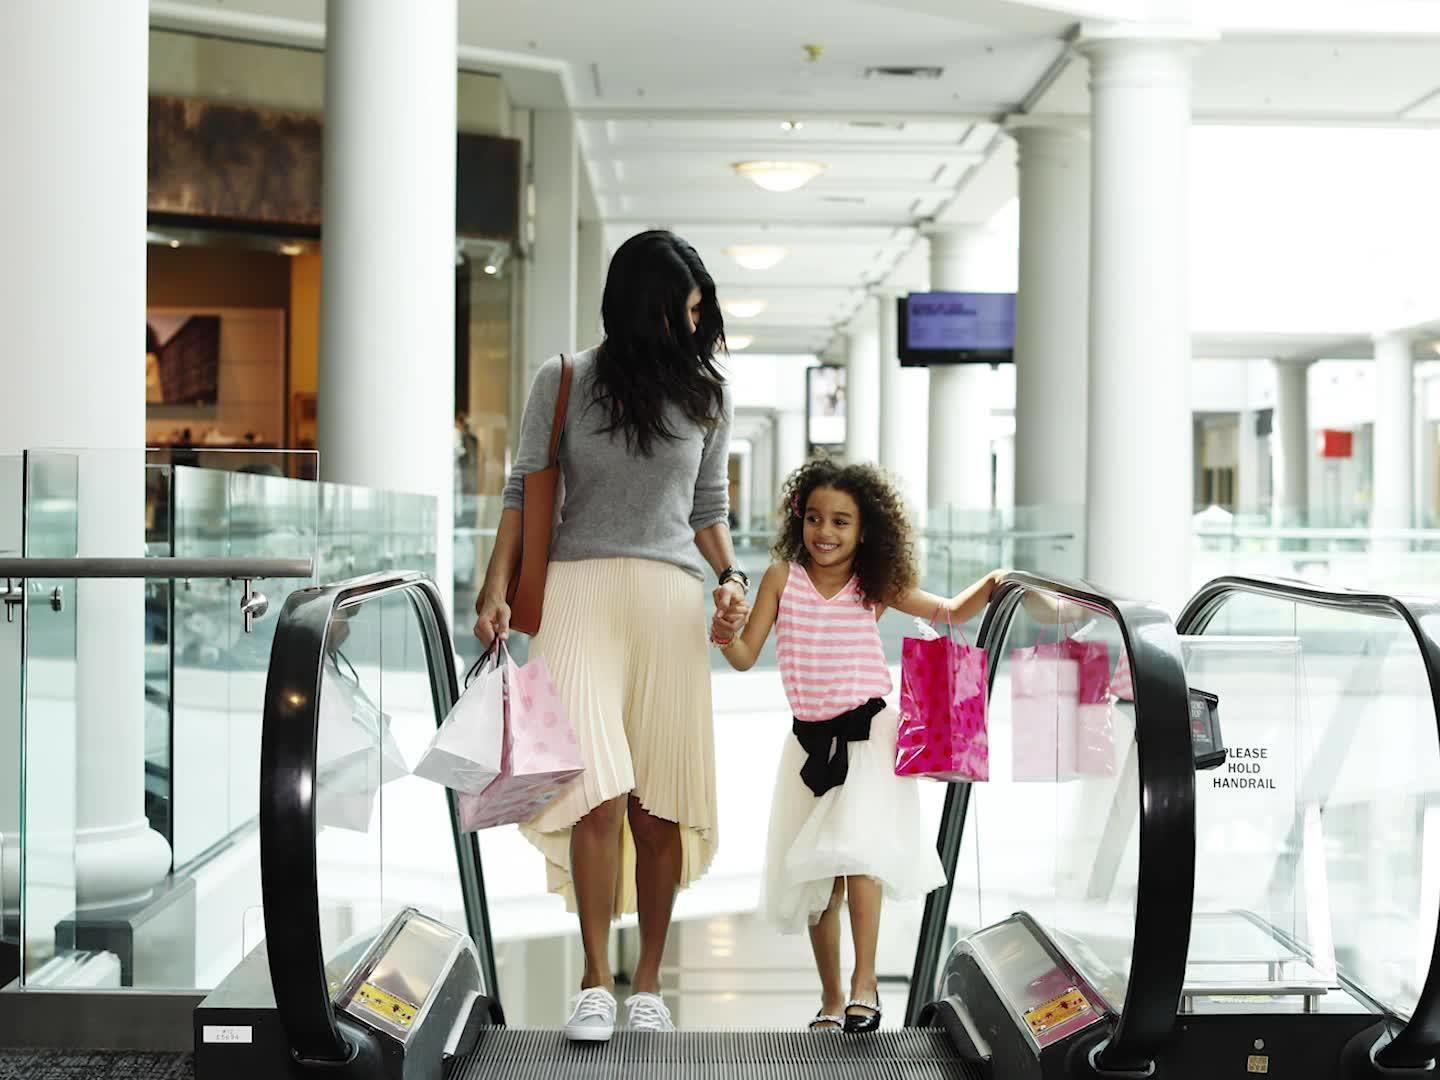 Mother and daughter holding shopping bags on escalator